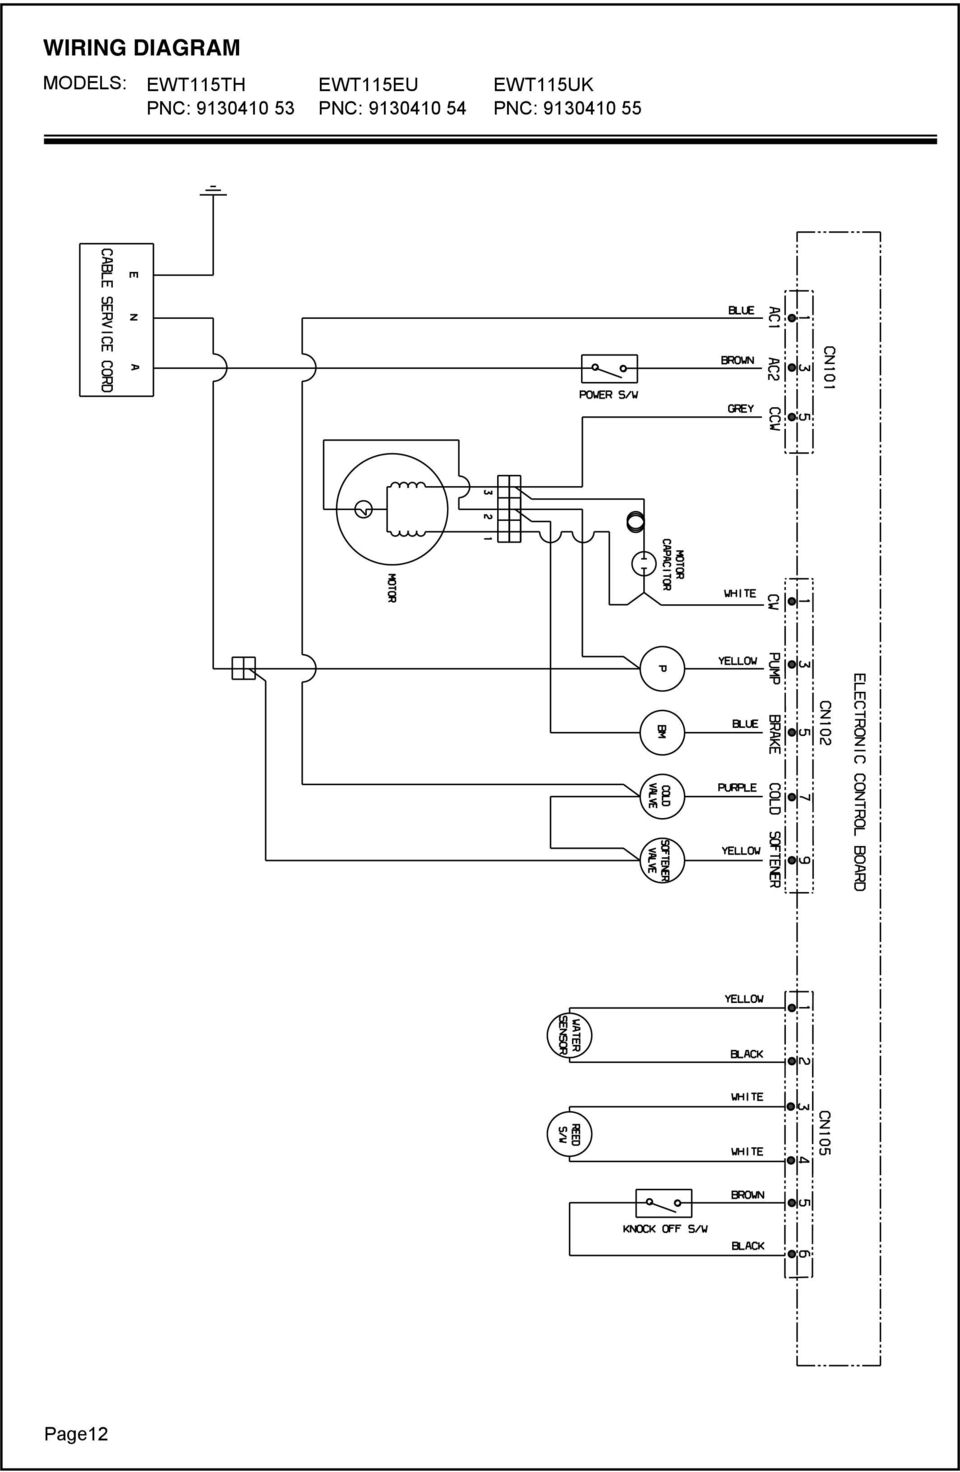 Electrolux Topload Washing Machine Pdf Wiring Diagram Whirlpool Wtw5200vq2 Pnc 91304 53